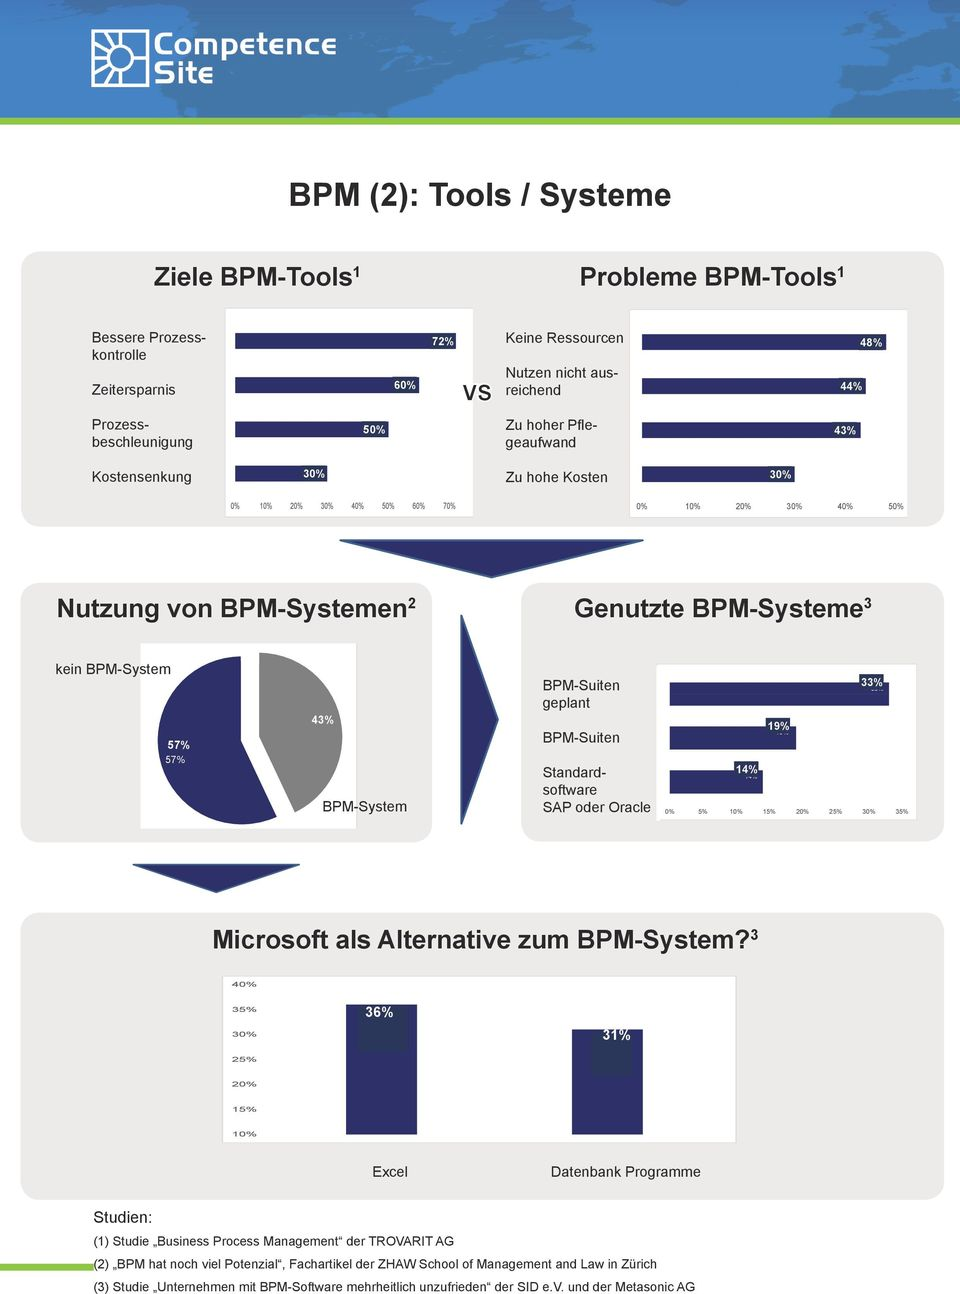 BPM-System BPM-Suiten geplant BPM-Suiten Standardsoftware SAP oder Oracle 14% 14% 19% 19% 33% 33% 0% 5% 10% 15% 20% 25% 30% 35% Microsoft als Alternative zum BPM-System?